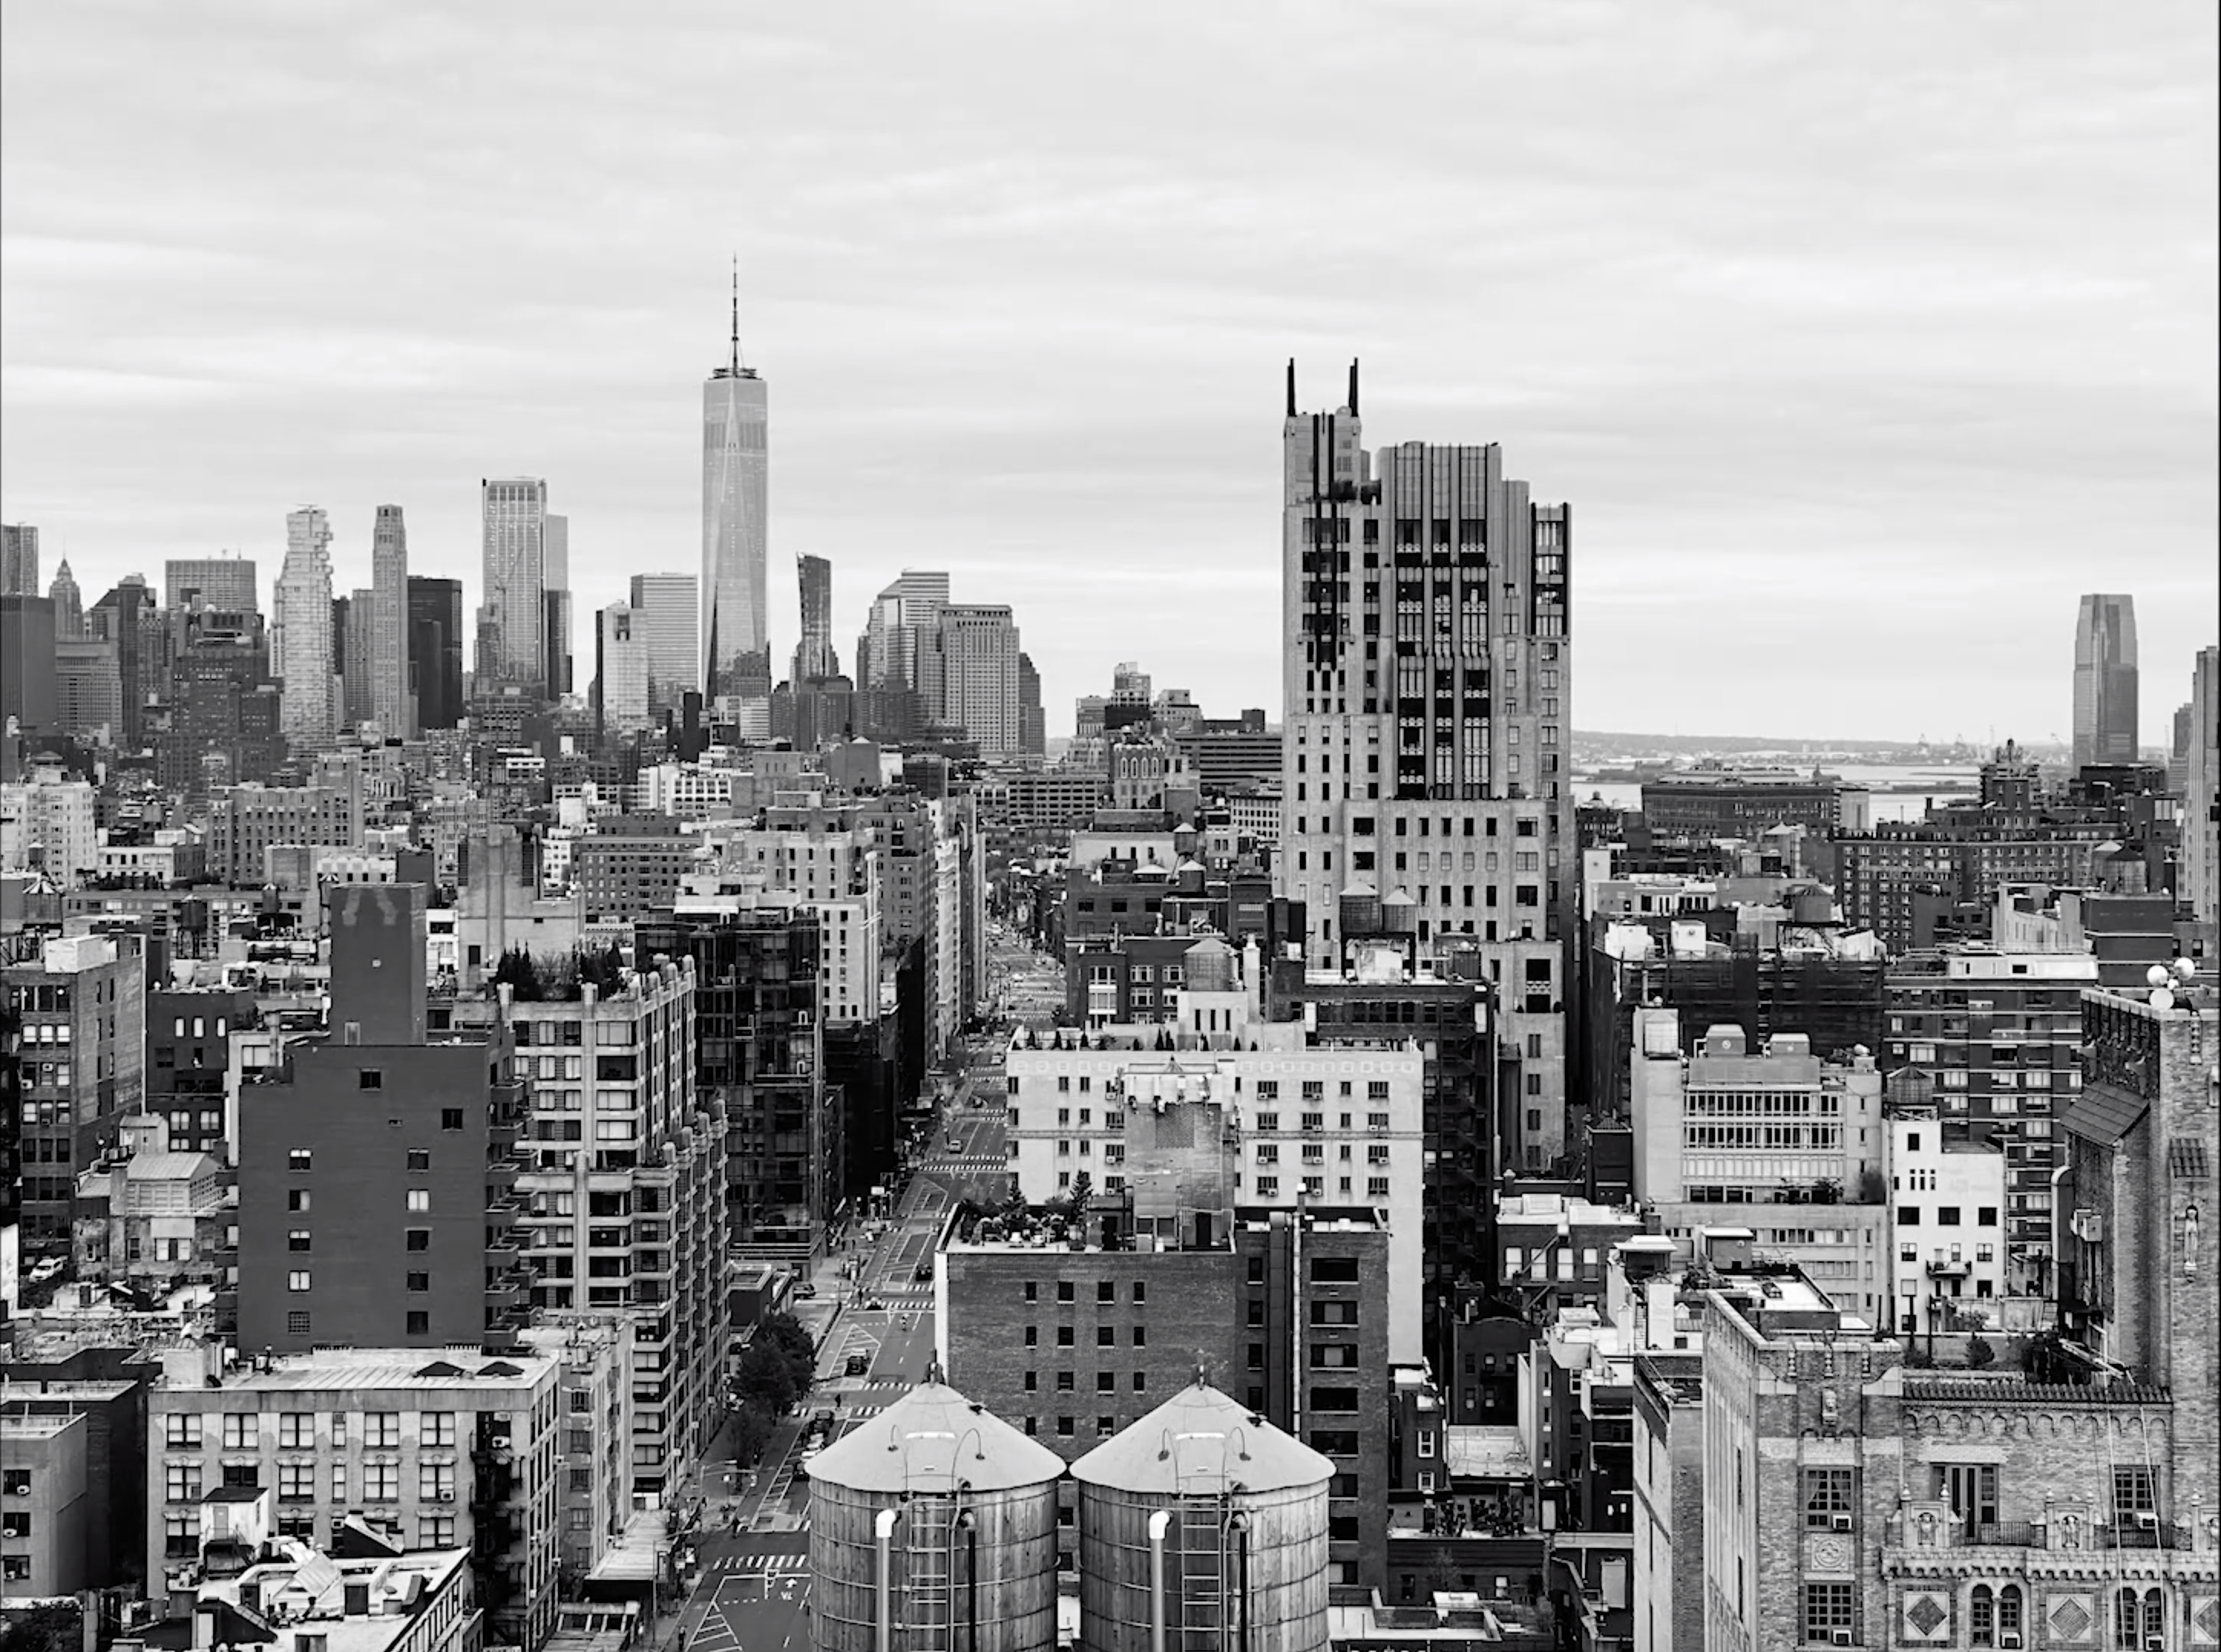 black and white image of New York City skyline with water towers